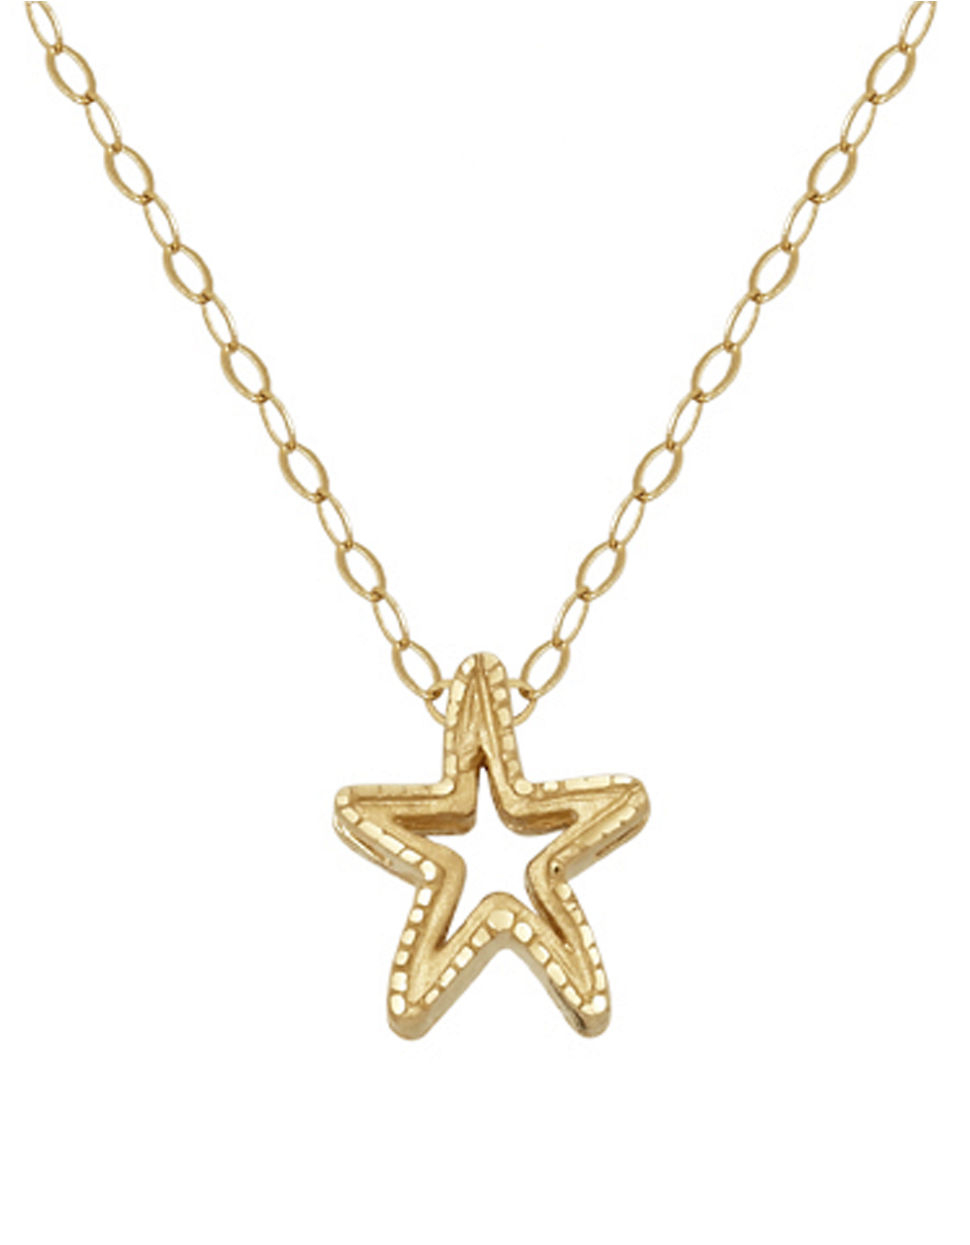 Lord + Taylor 14k Yellow Gold Starfish Charm Necklace in